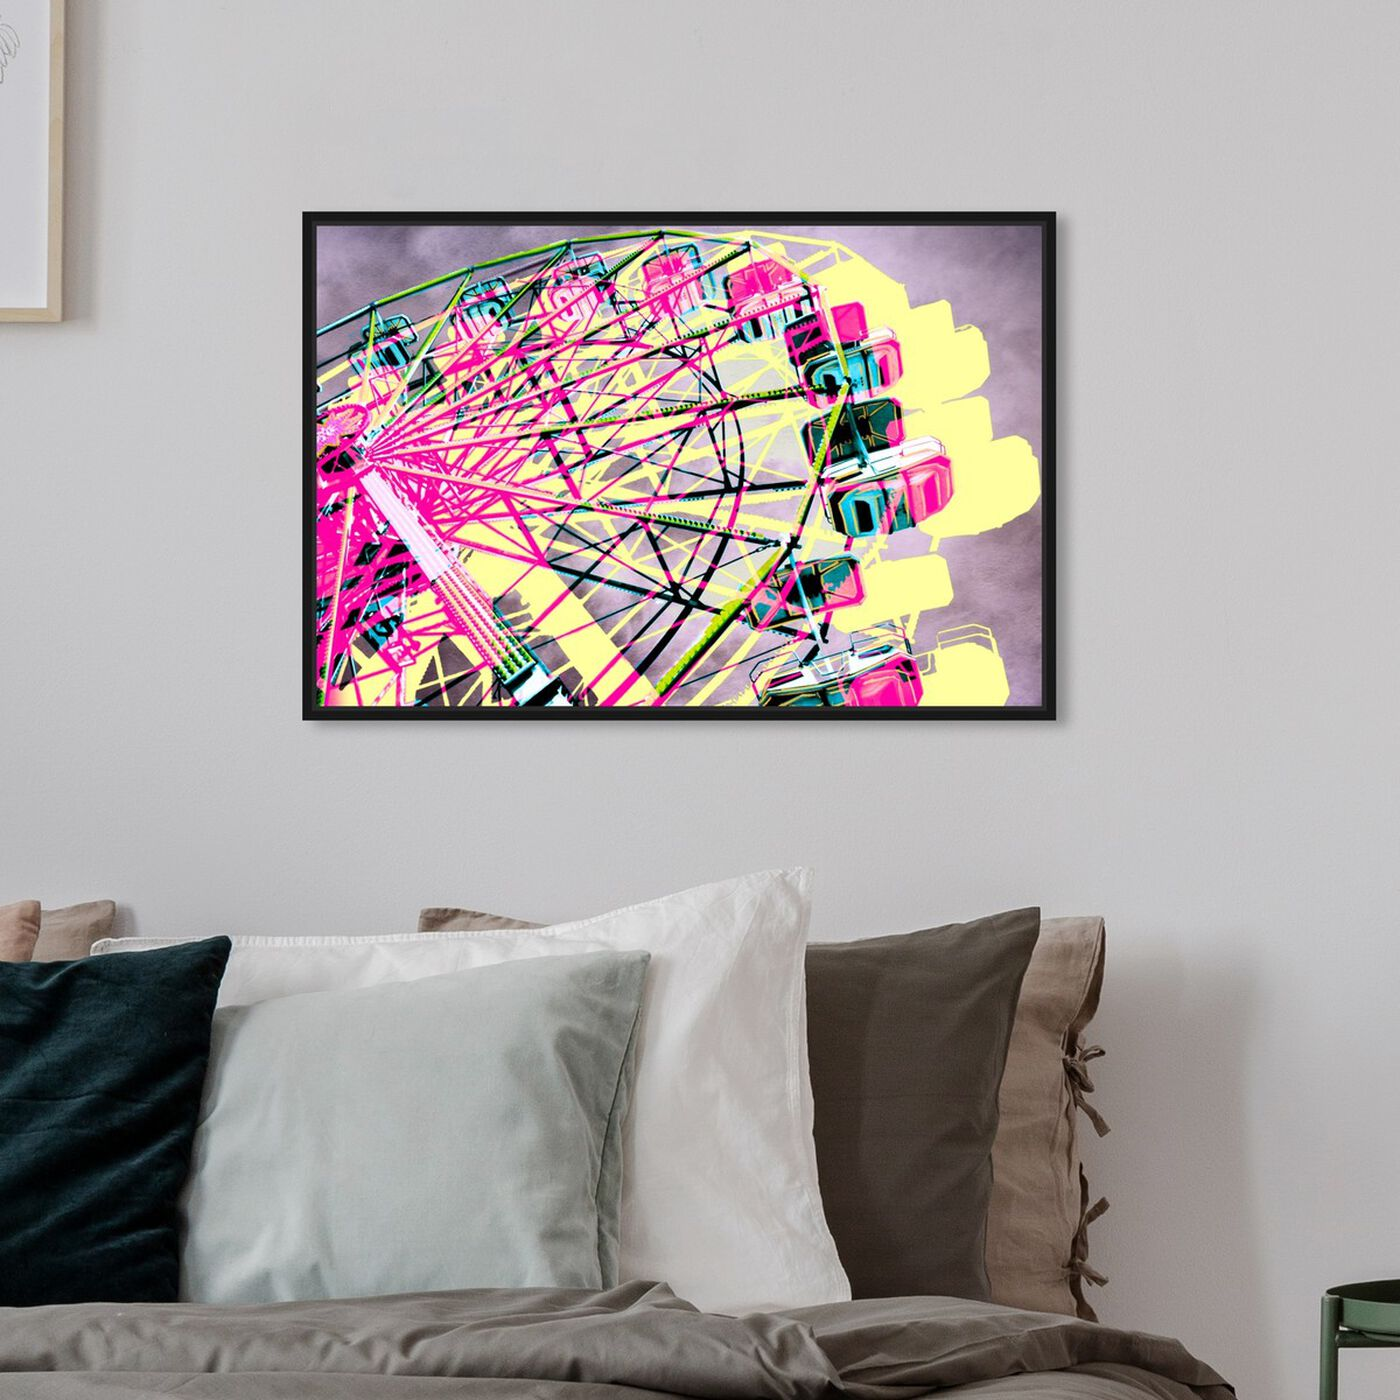 Hanging view of Ferris Wheel featuring entertainment and hobbies and fairs art.